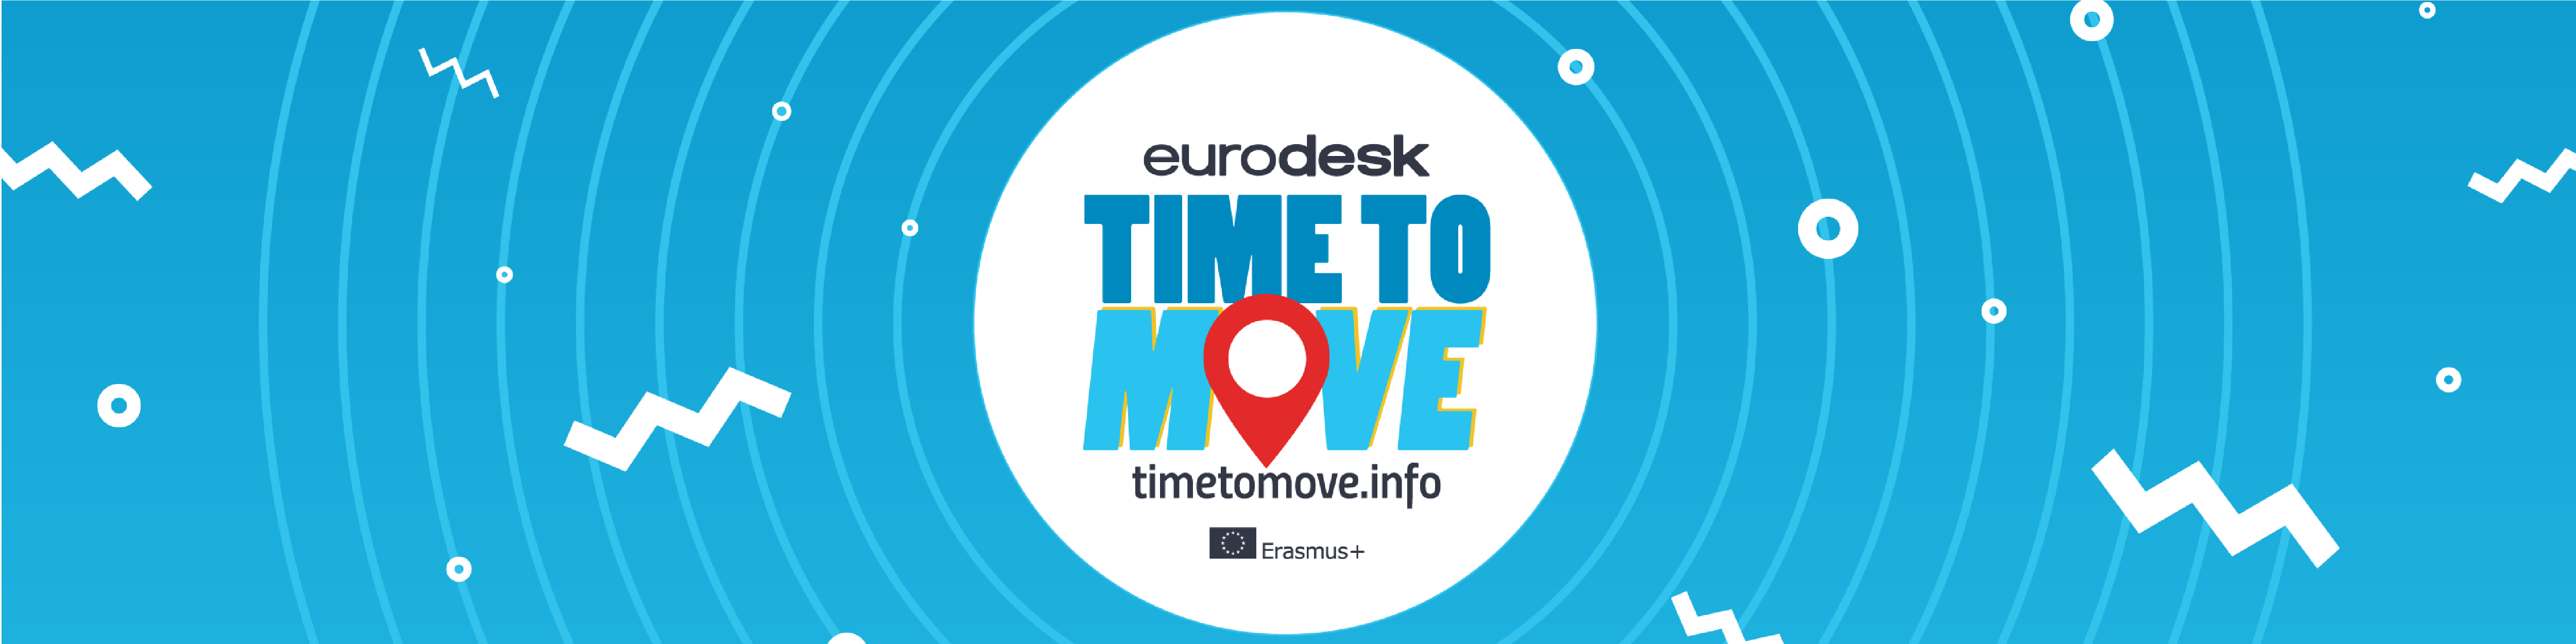 Campaña europea Time to Move 2020